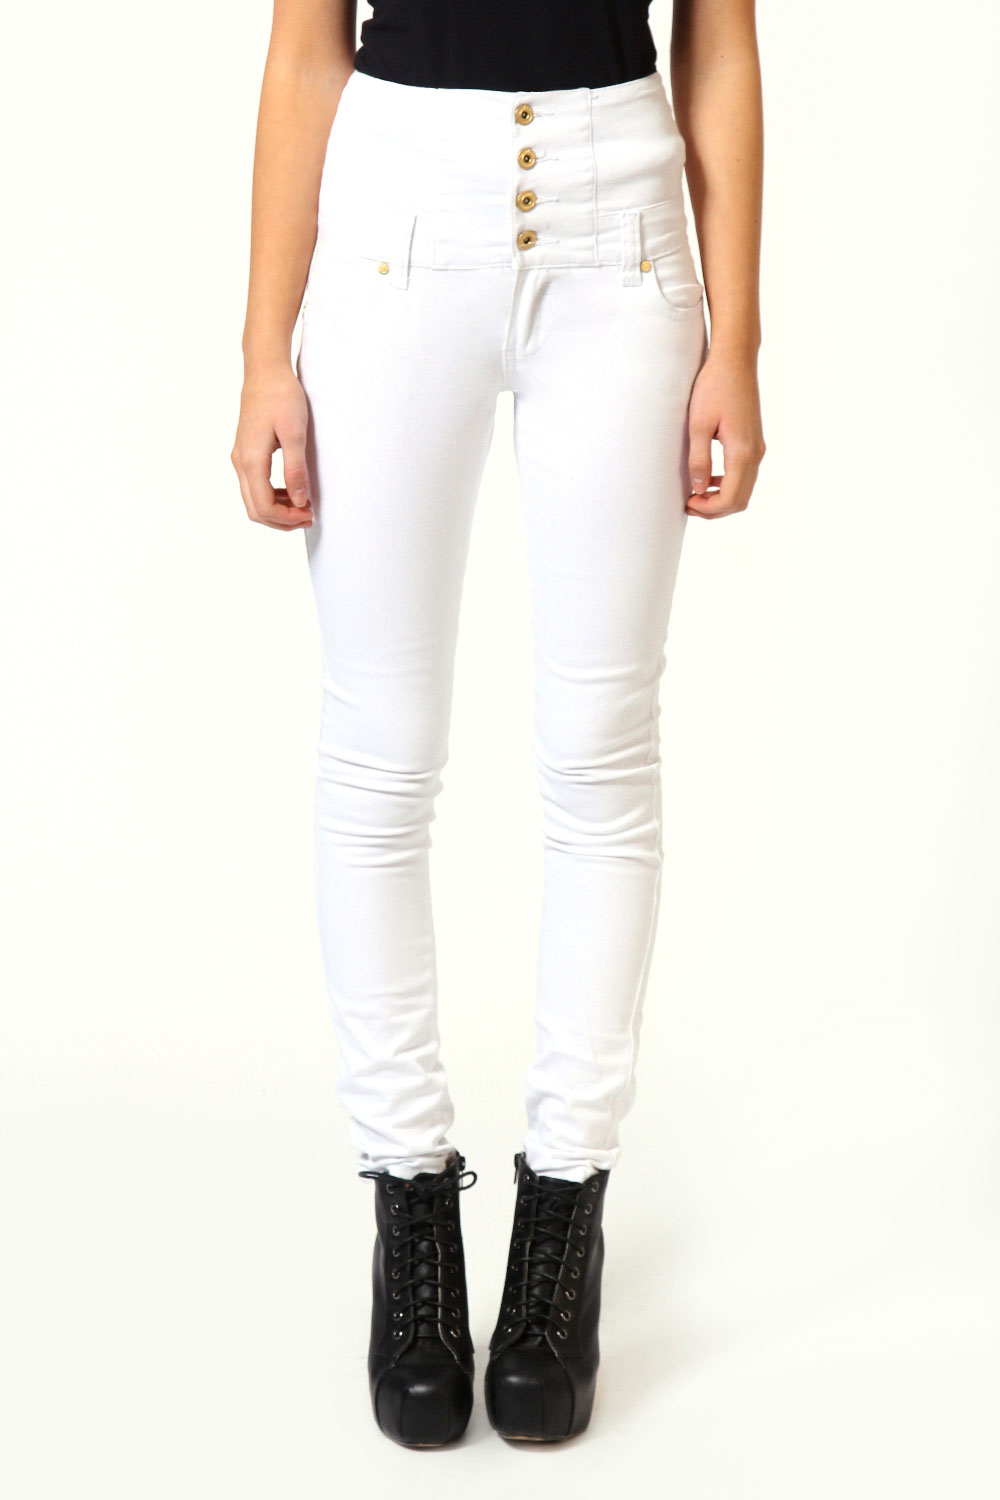 Boohoo high waisted jeans – Global fashion jeans models